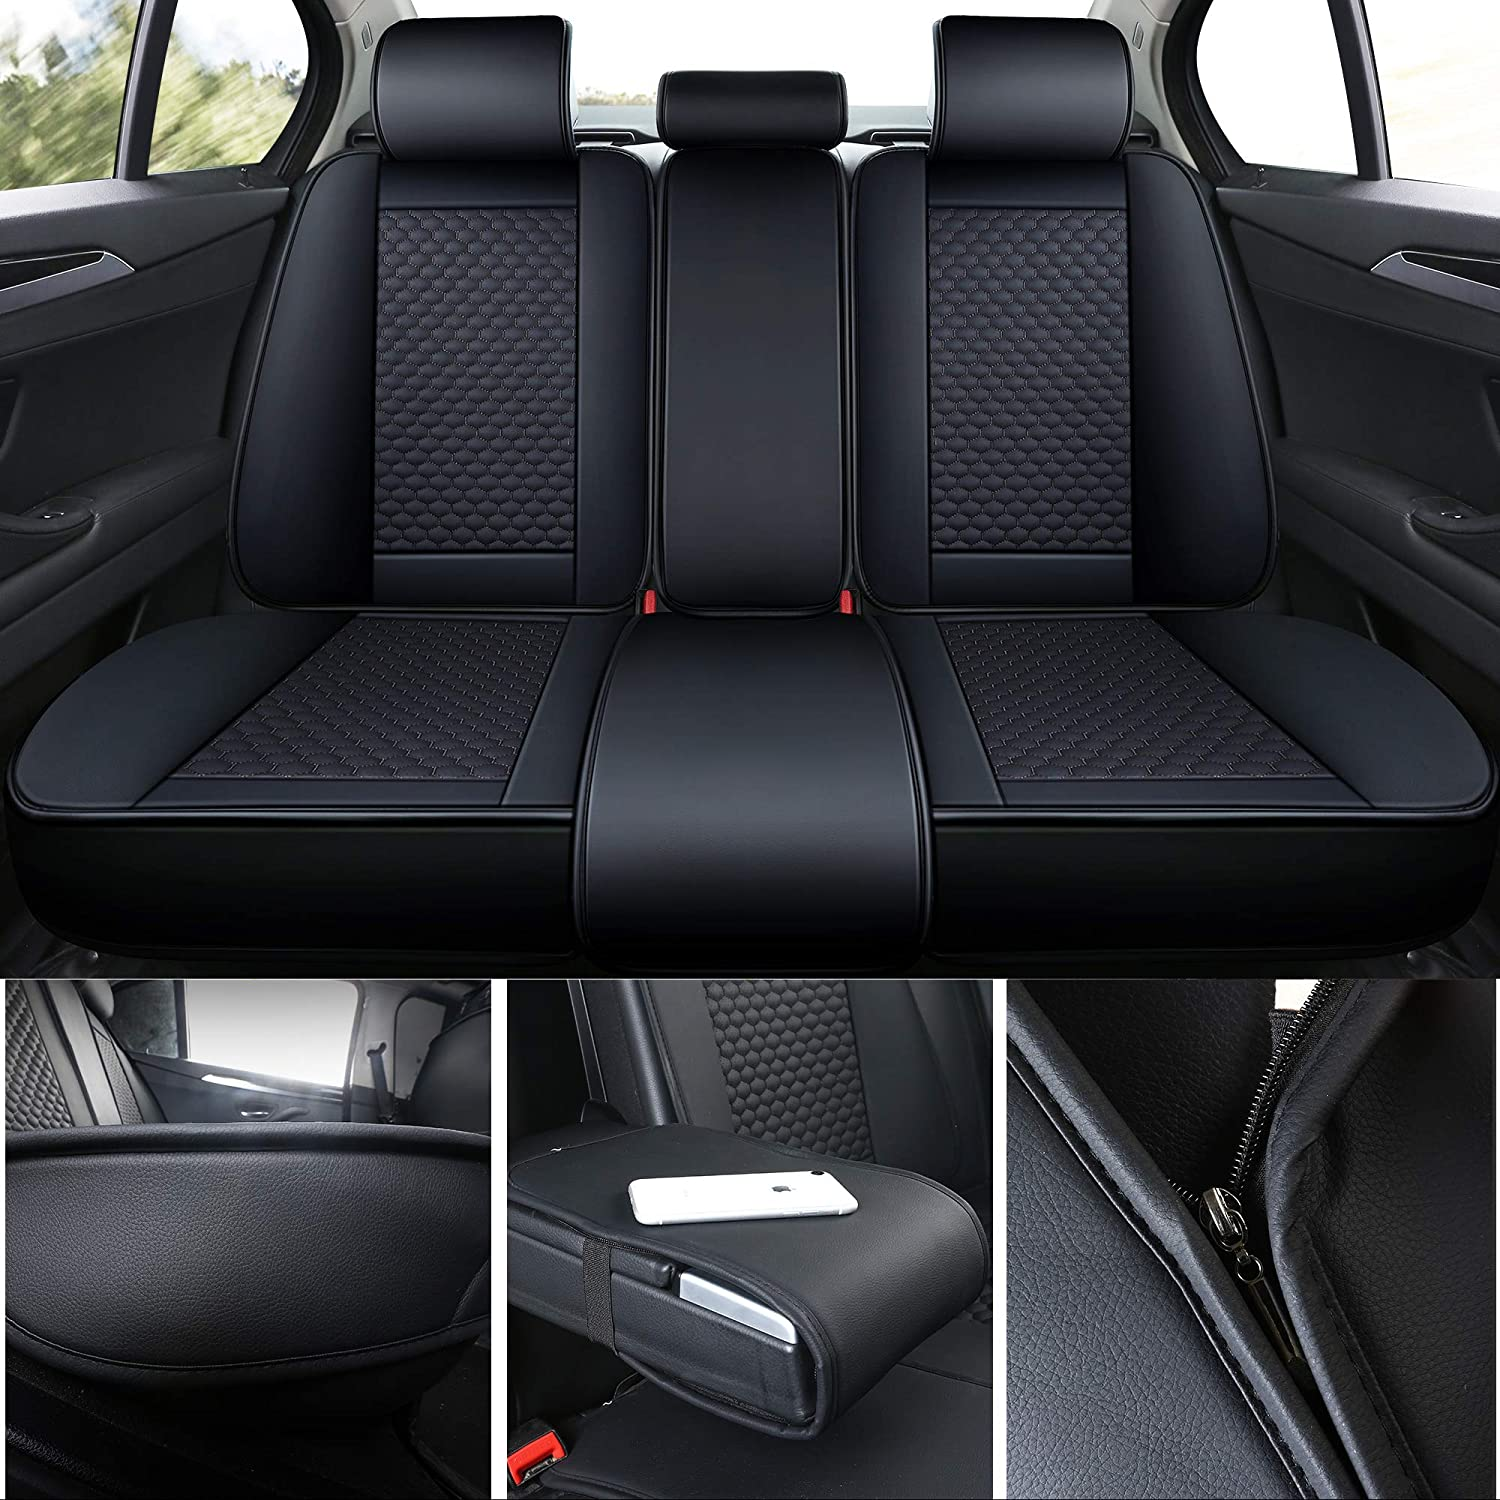 INCH EMPIRE Car Seat Cover-Football Liner Half Perforated Leatherette Cushion Fit for Accord Legacy Outback WRX Crosstrek Hybrid Tacoma FJ Cruiser RAV4 Corolla Matrix Venza Avalon 2 Front Black/&Red